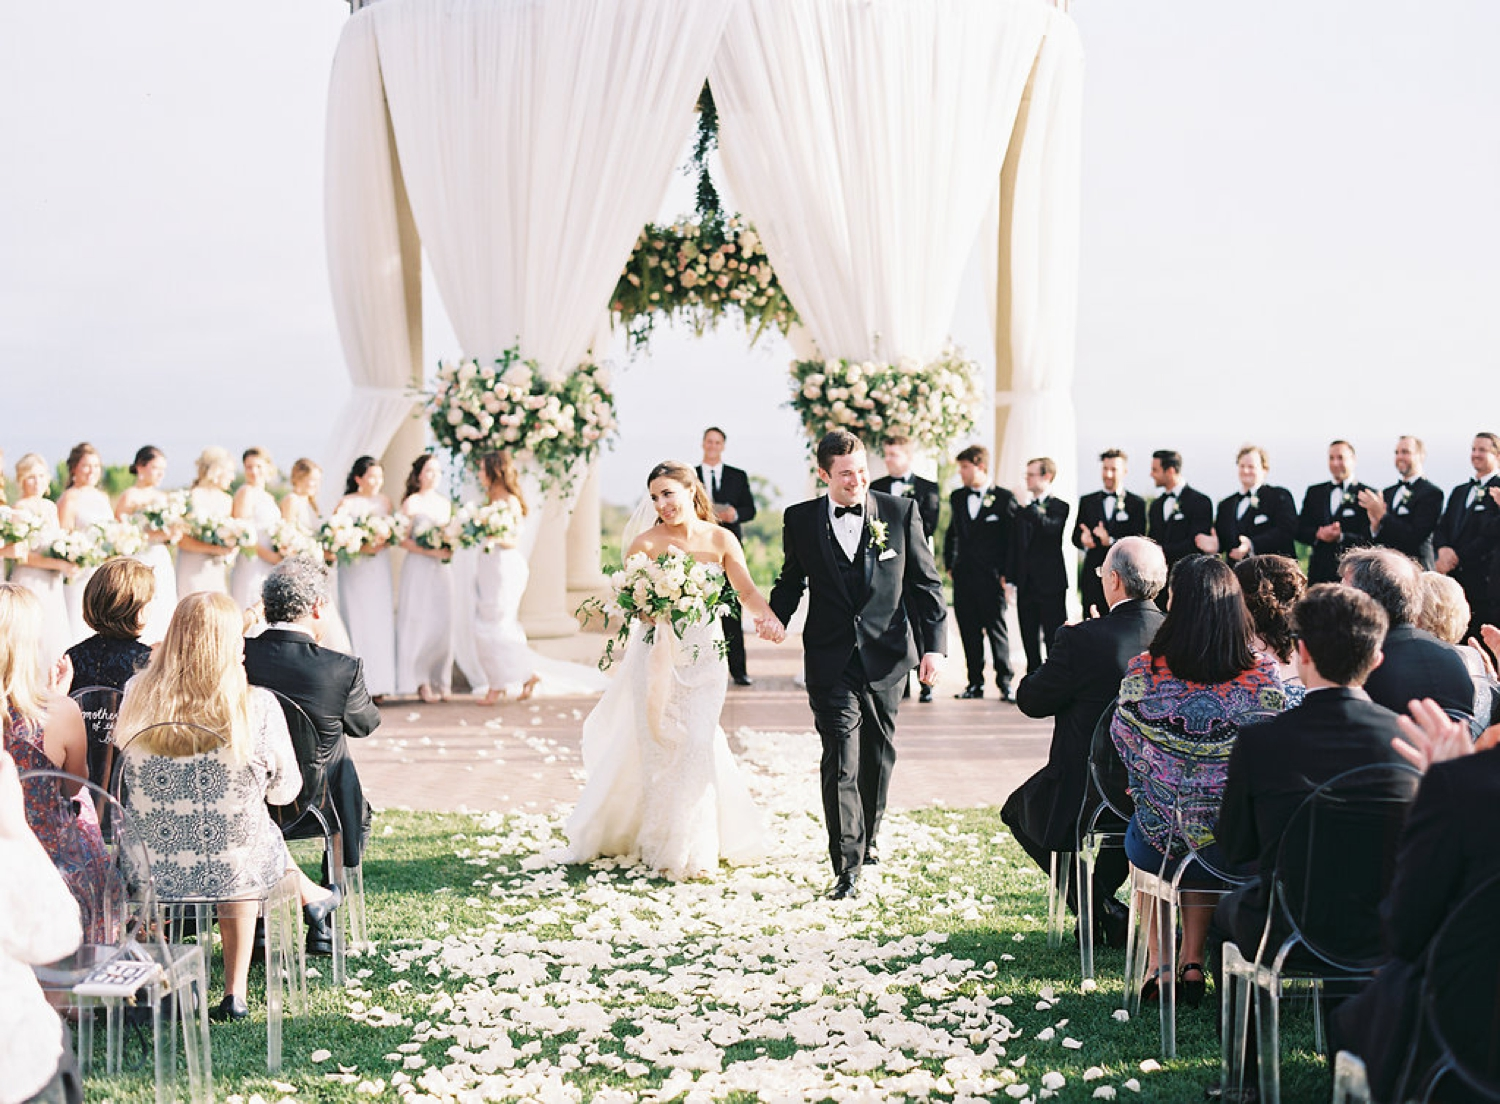 LVL-Weddings-and-Events-Pelican-Hill-9 - LVL Weddings & Events